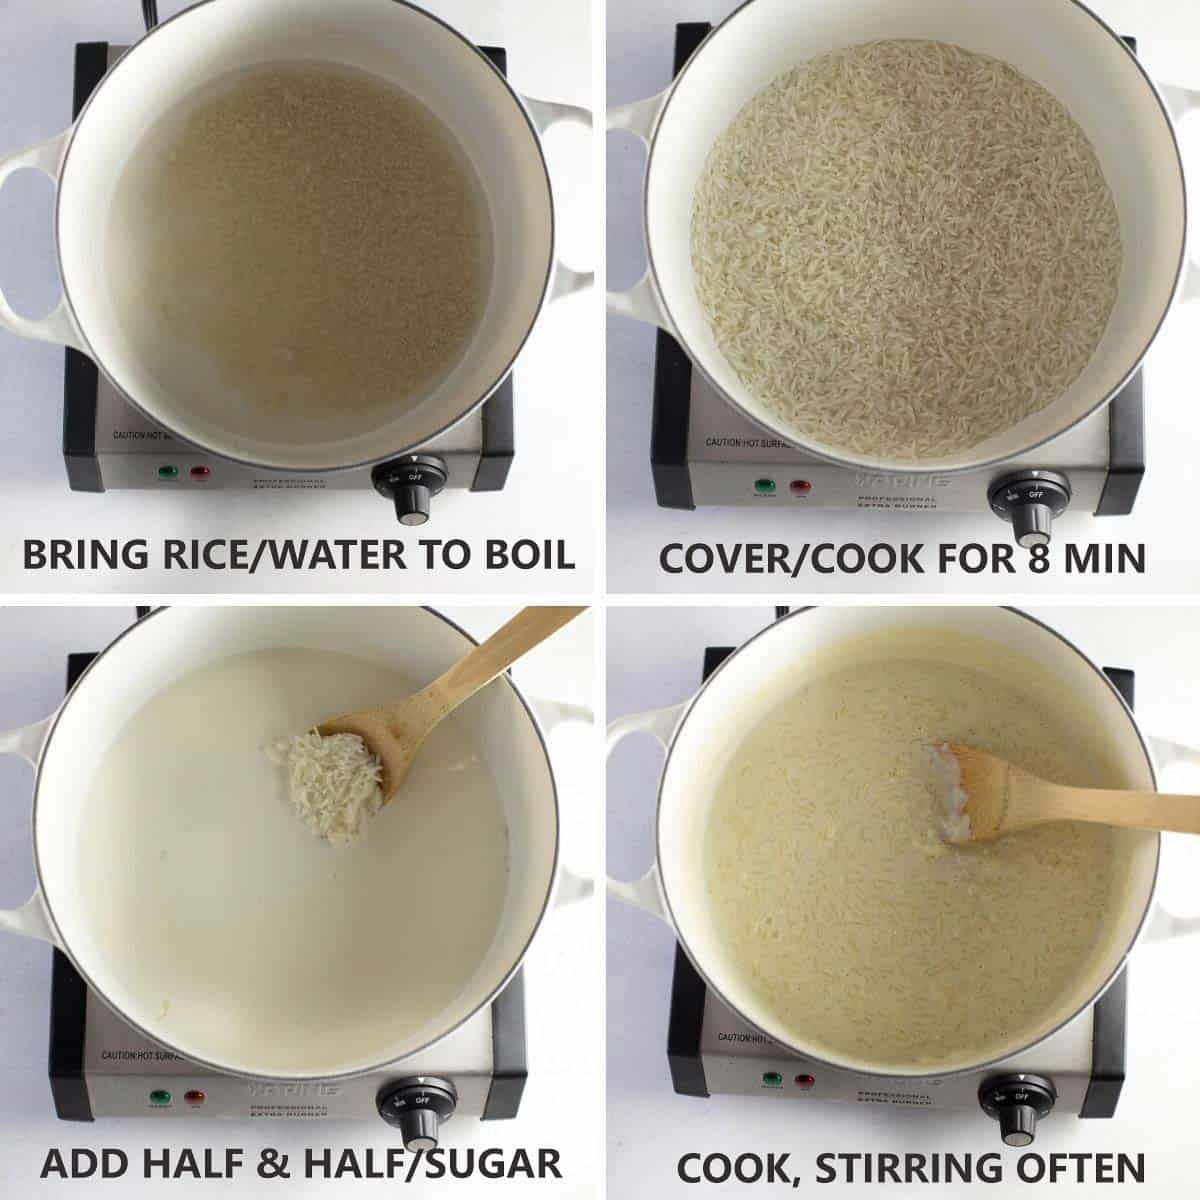 4 photos showing how to start cooking the rice